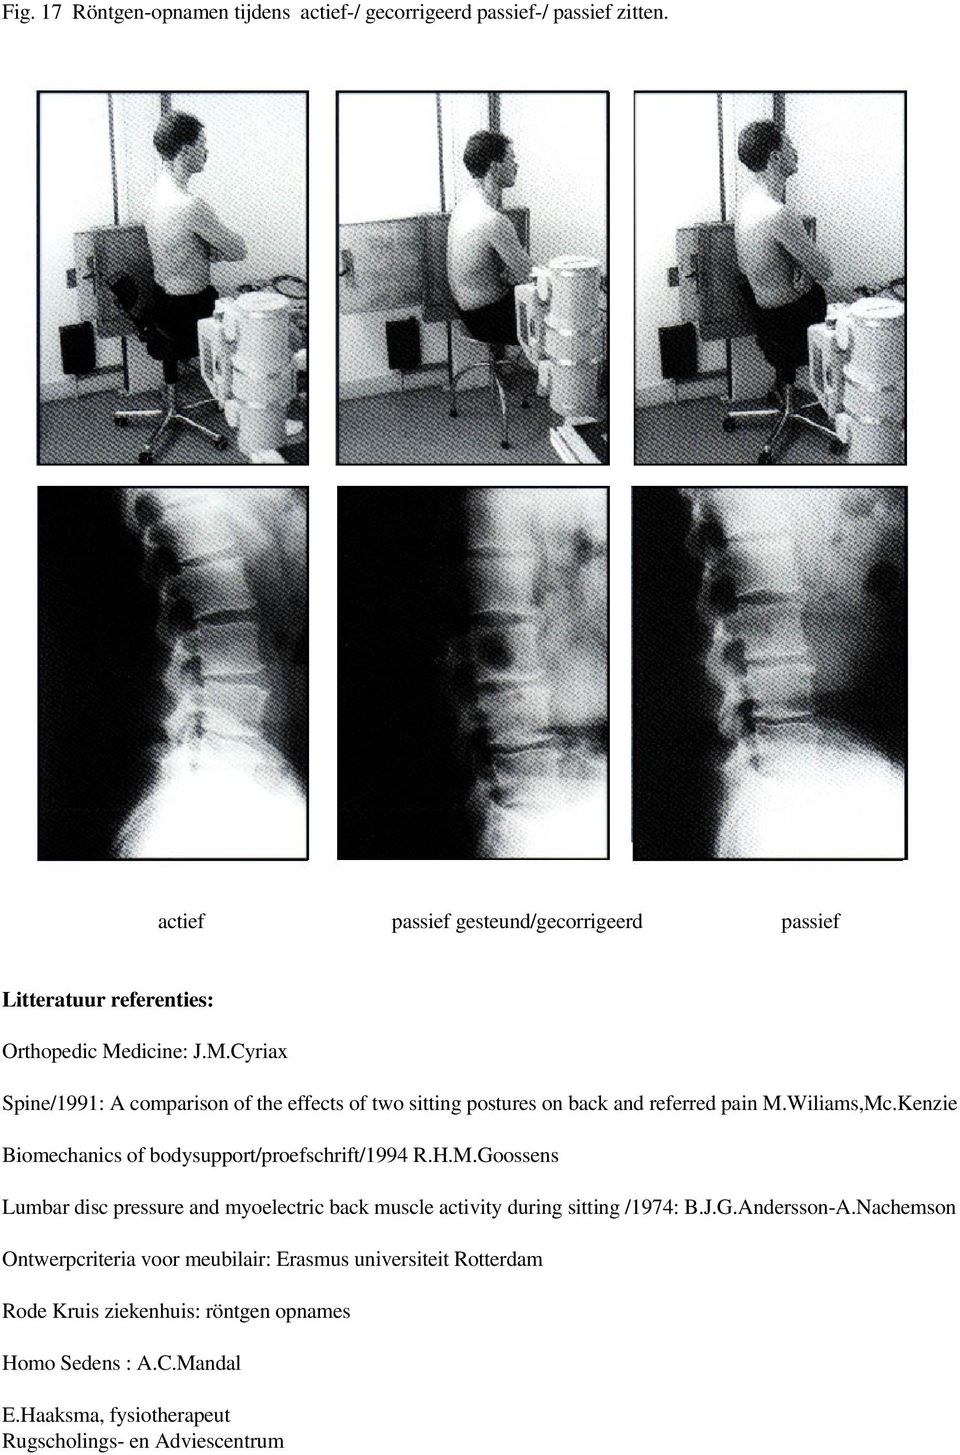 dicine: J.M.Cyriax Spine/1991: A comparison of the effects of two sitting postures on back and referred pain M.Wiliams,Mc.